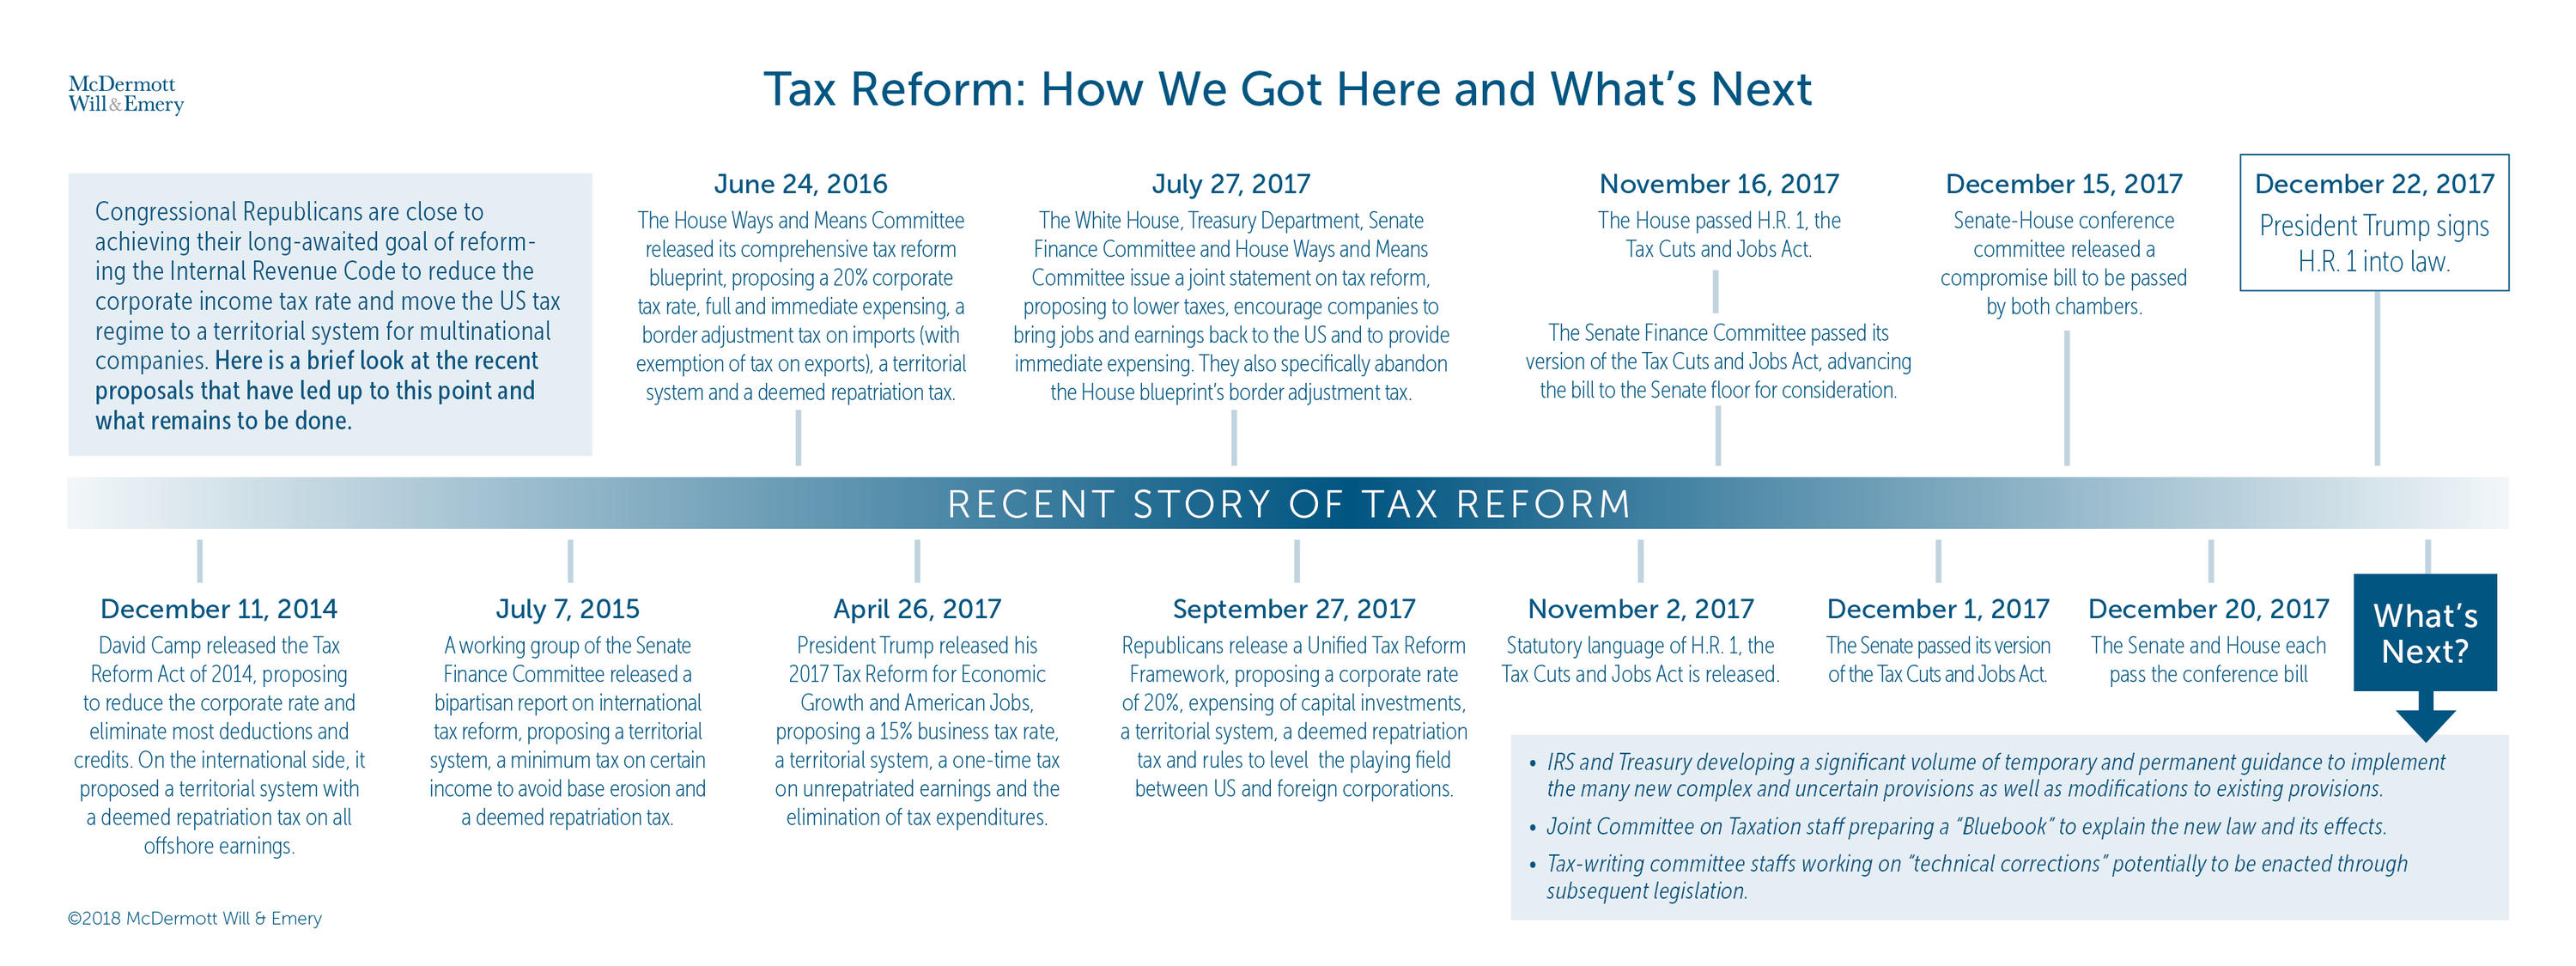 Tax Reform: How We Got Here and What's Next